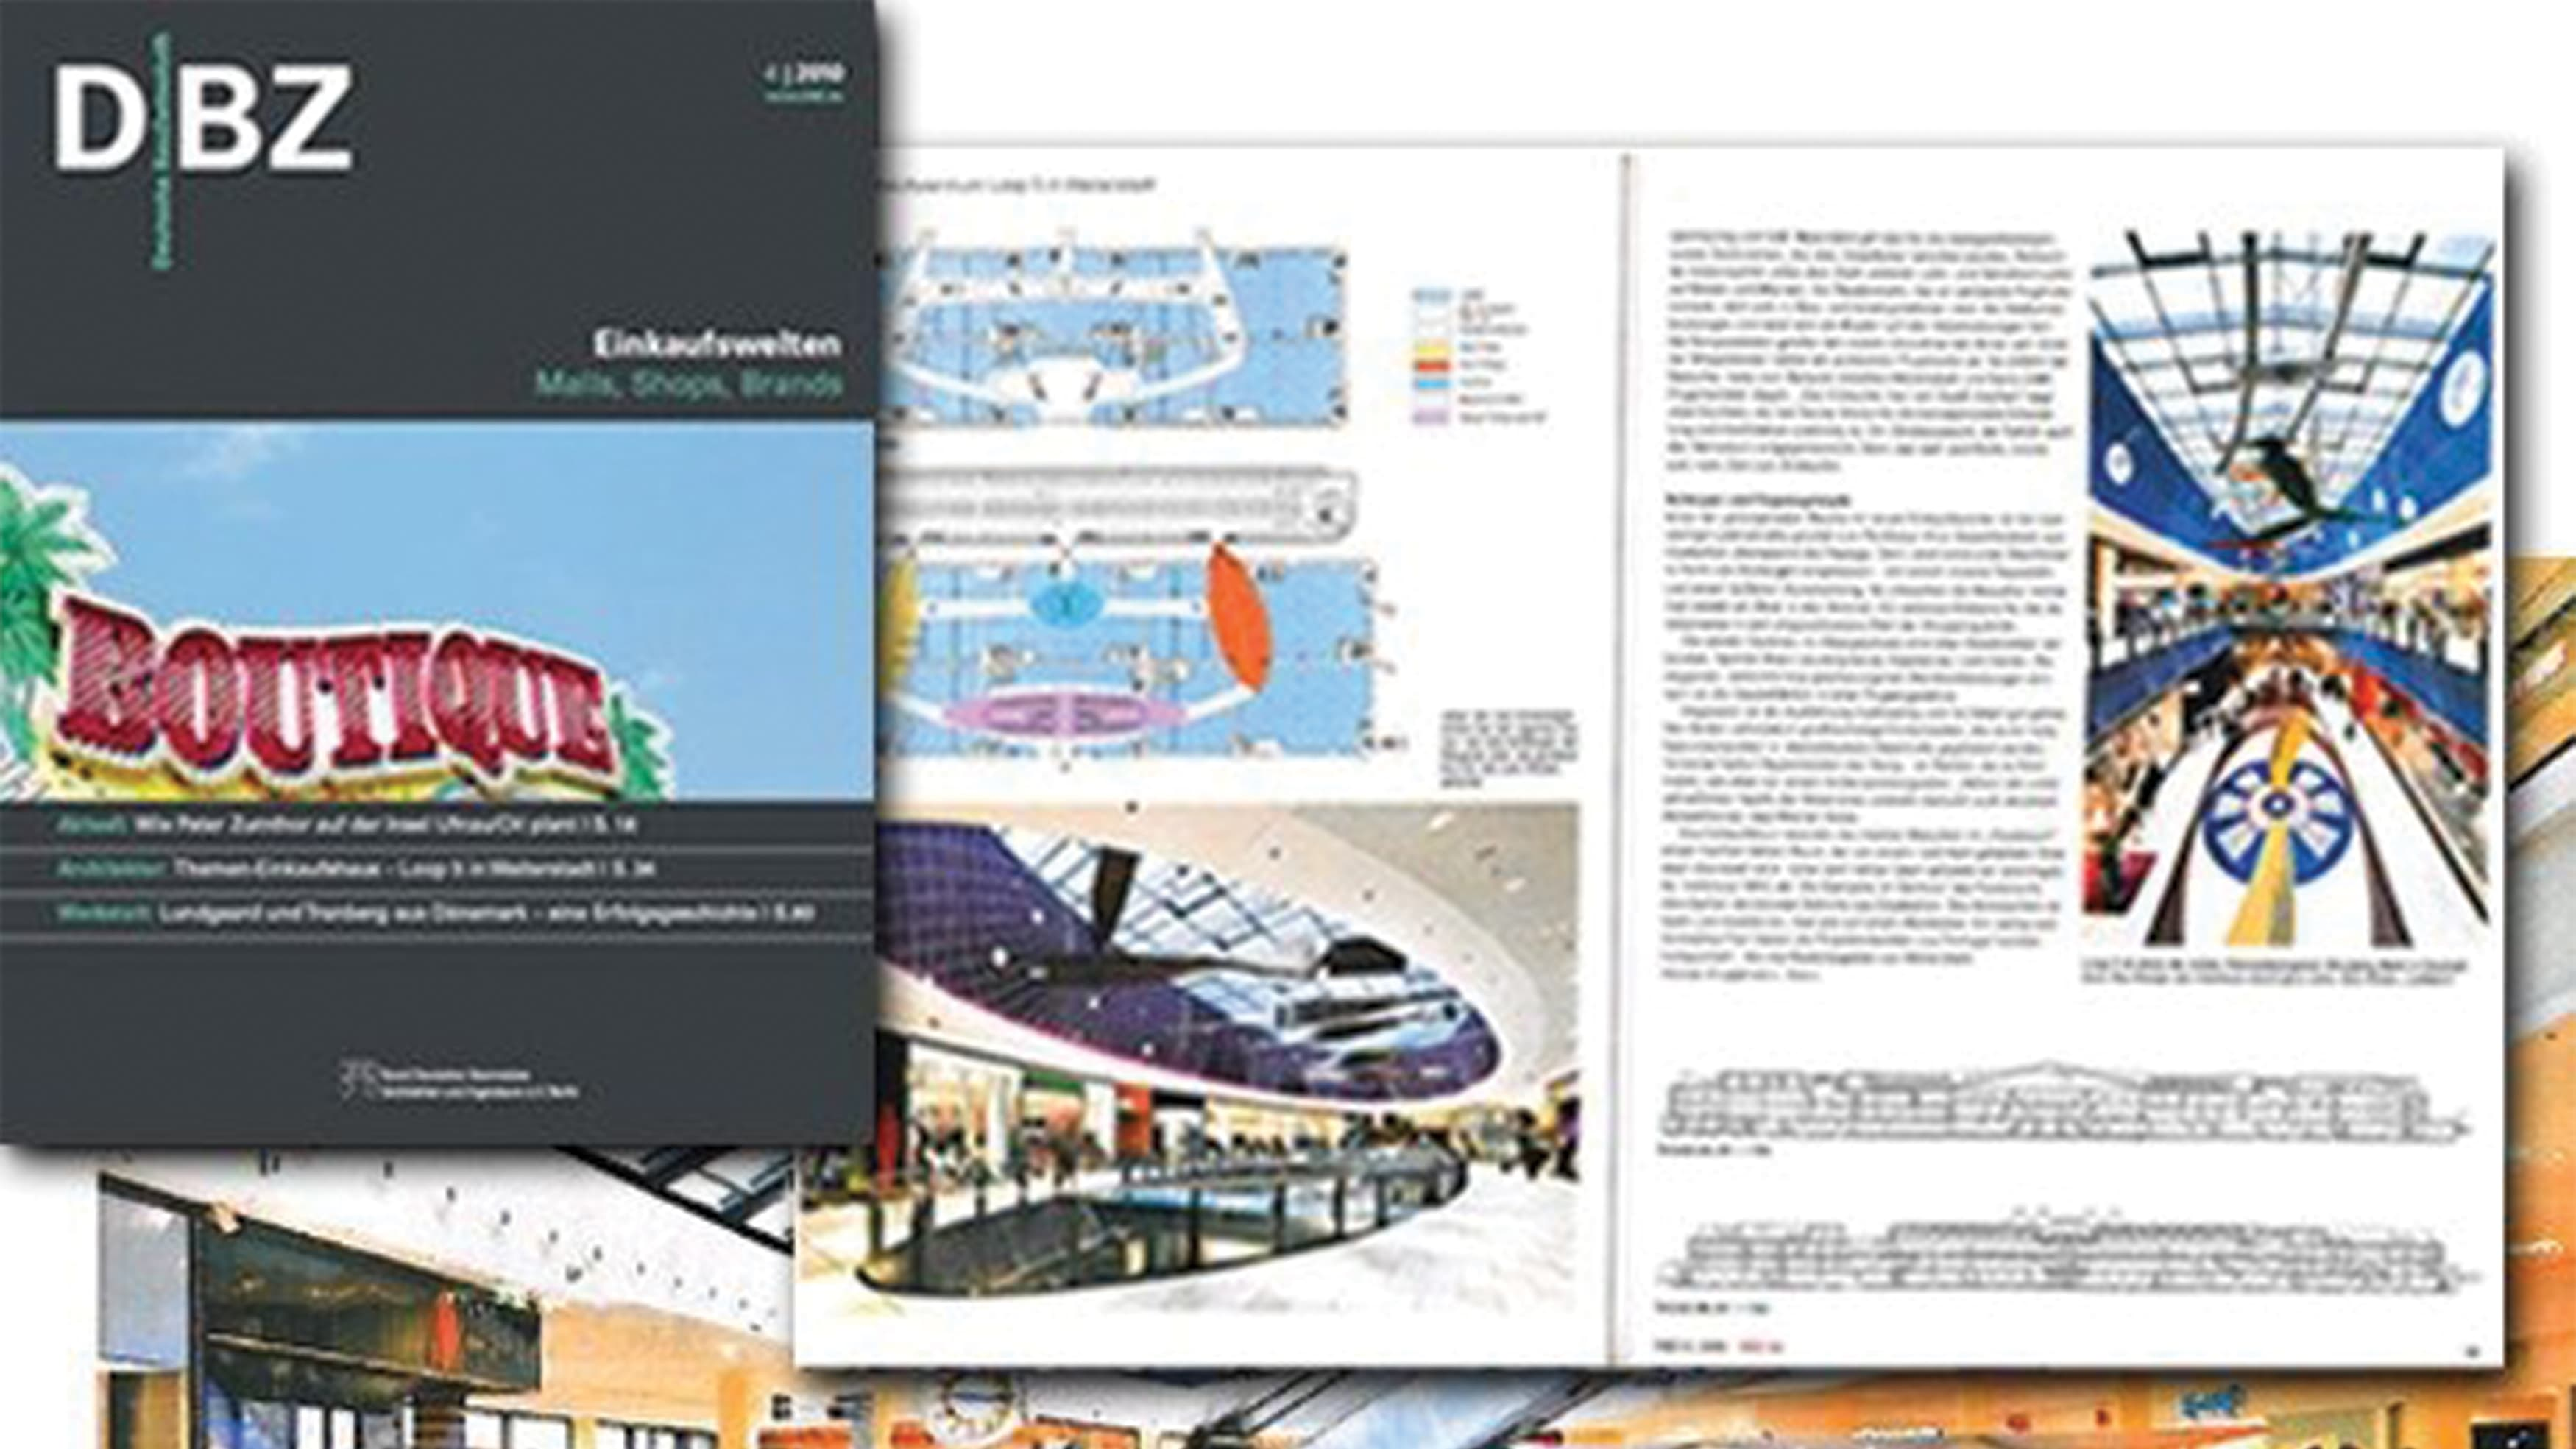 DBZ Architecture Magazine features Loop 5, a project RSM Design was involved in.